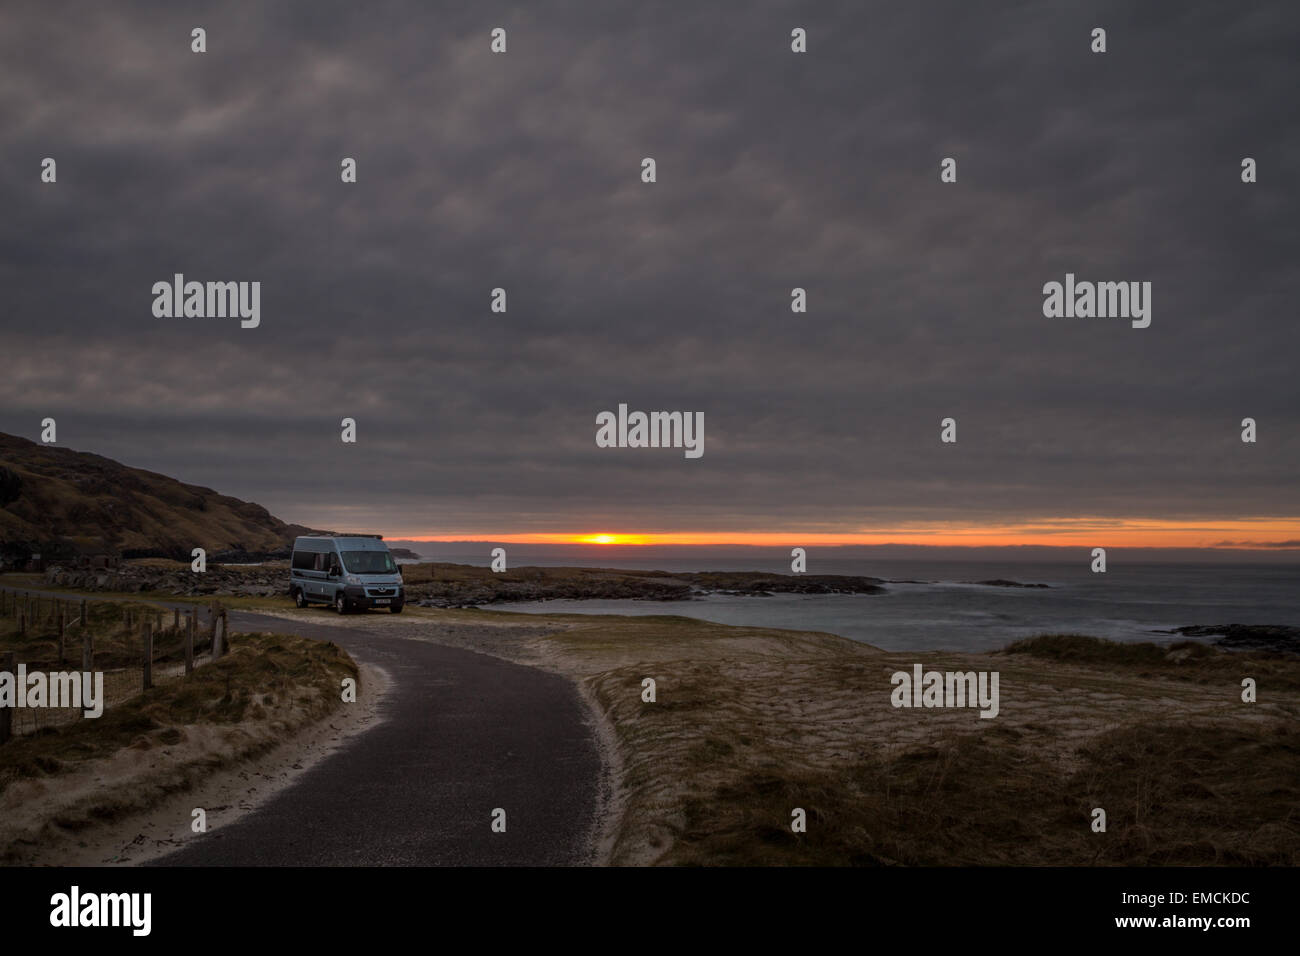 Overnight camping at Cliad Isle of Barra, Outer Hebrides - Stock Image